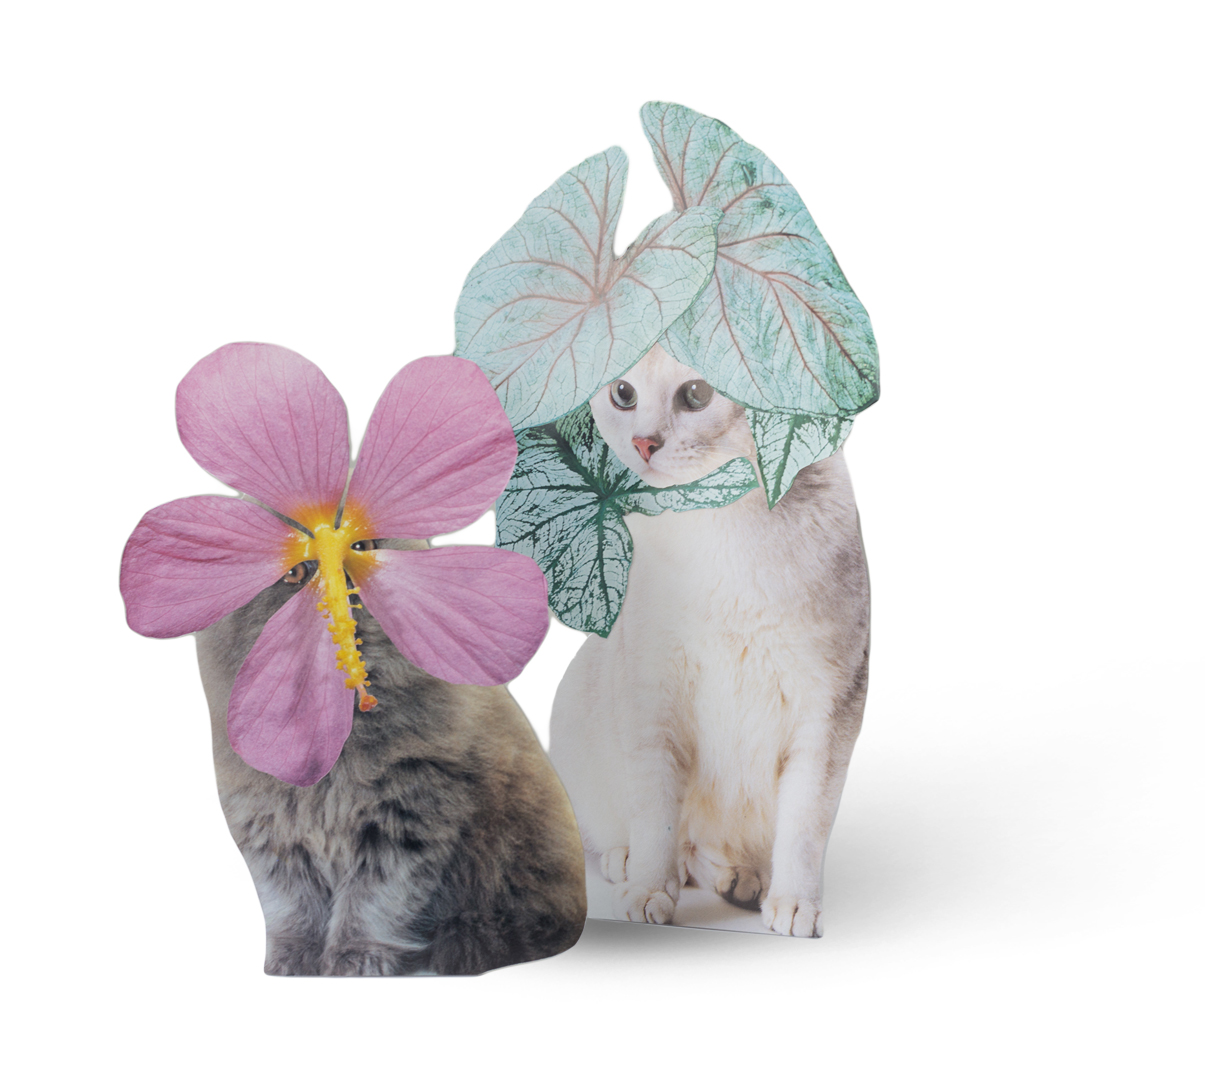 Photomontage - Stephen Eichhorn - Cats & Plants - Pink Flower (left), Houseplant (right) 2016